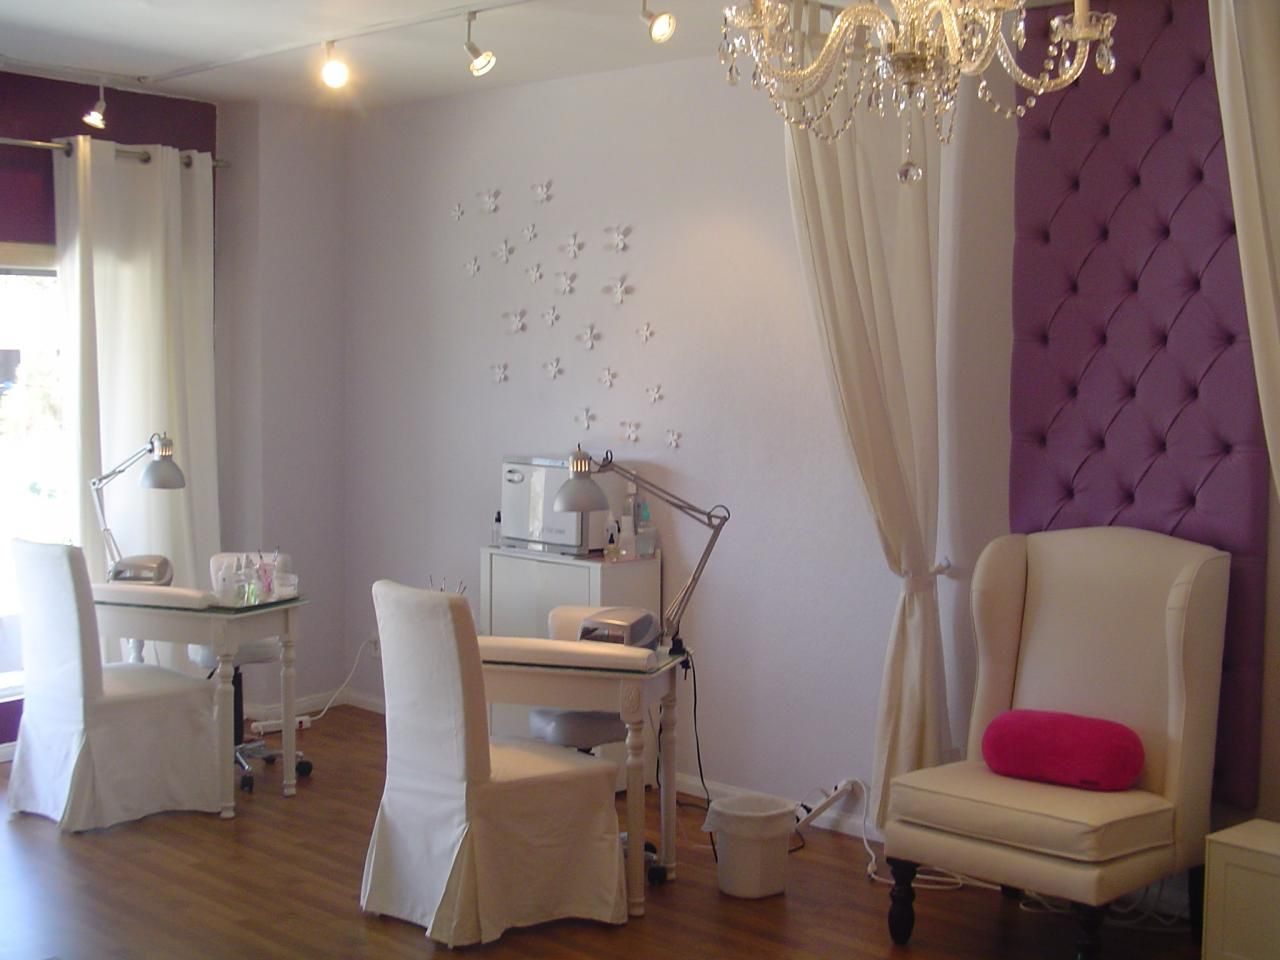 Manicure stations home salon pinterest manicure for 24 hour nail salon queens ny